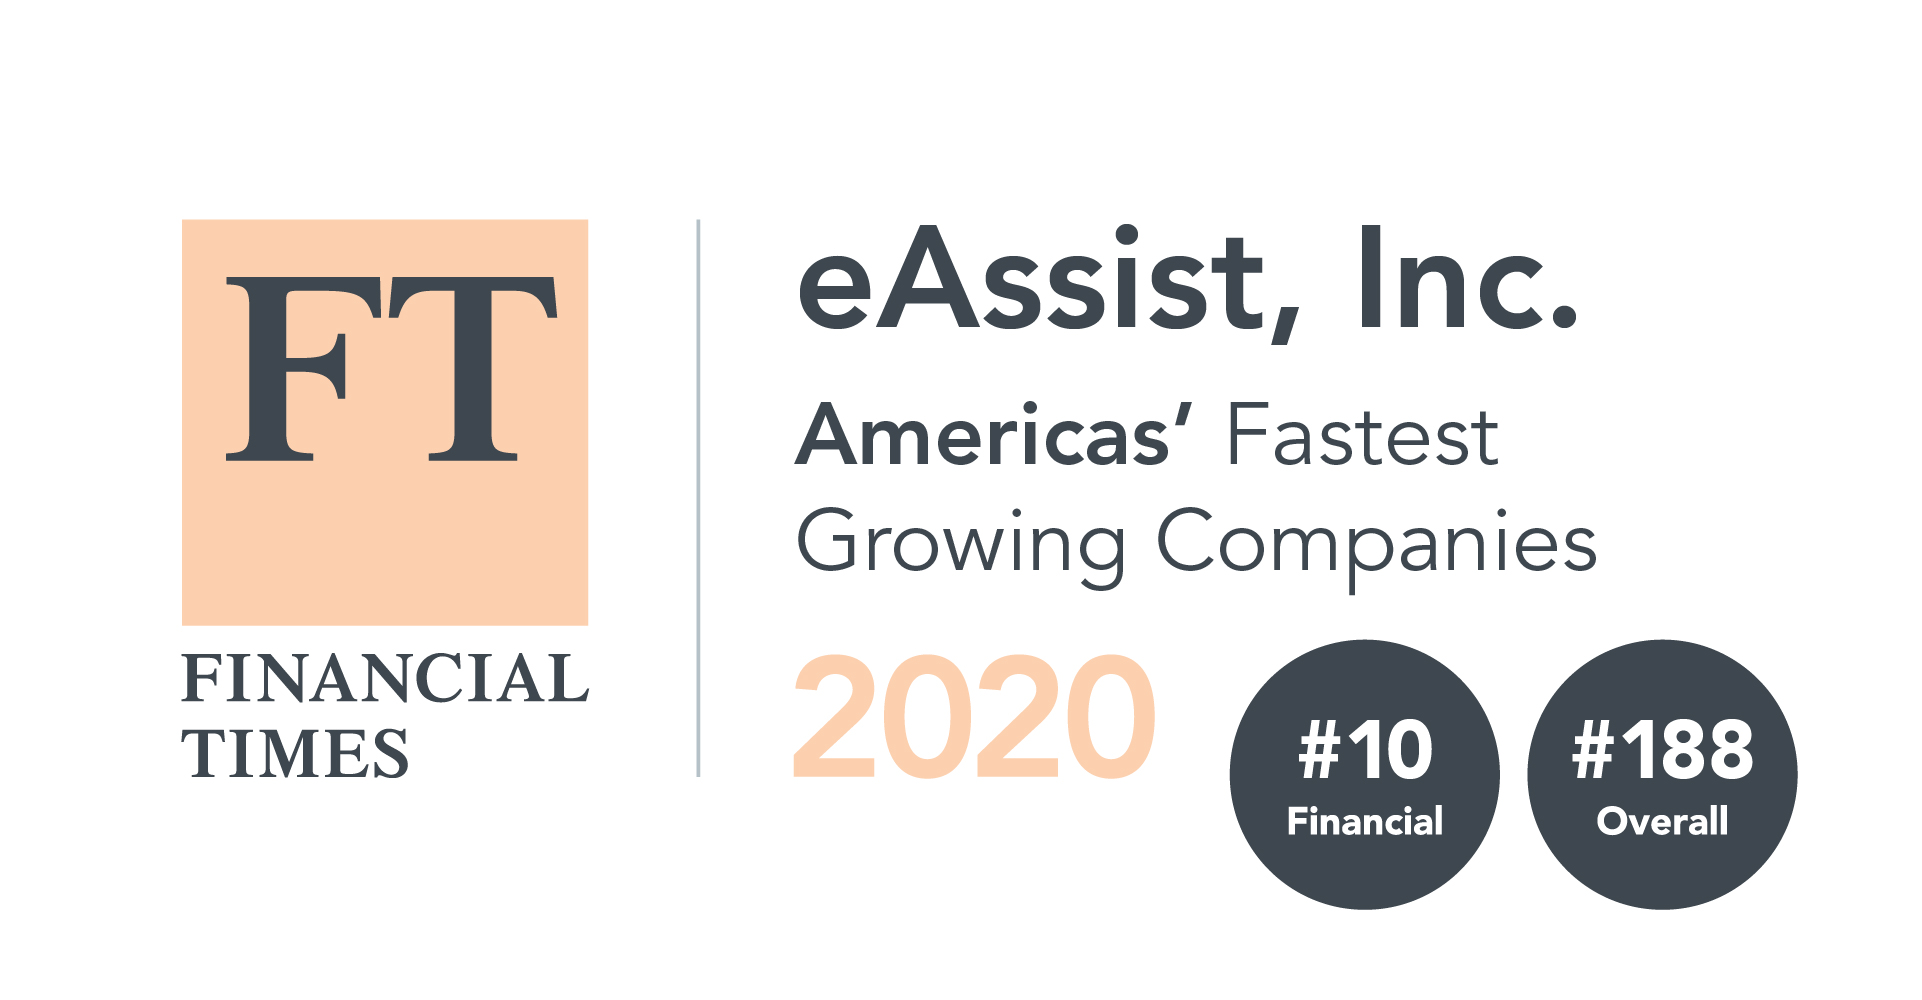 eAssist #10 Financial #188 Overall